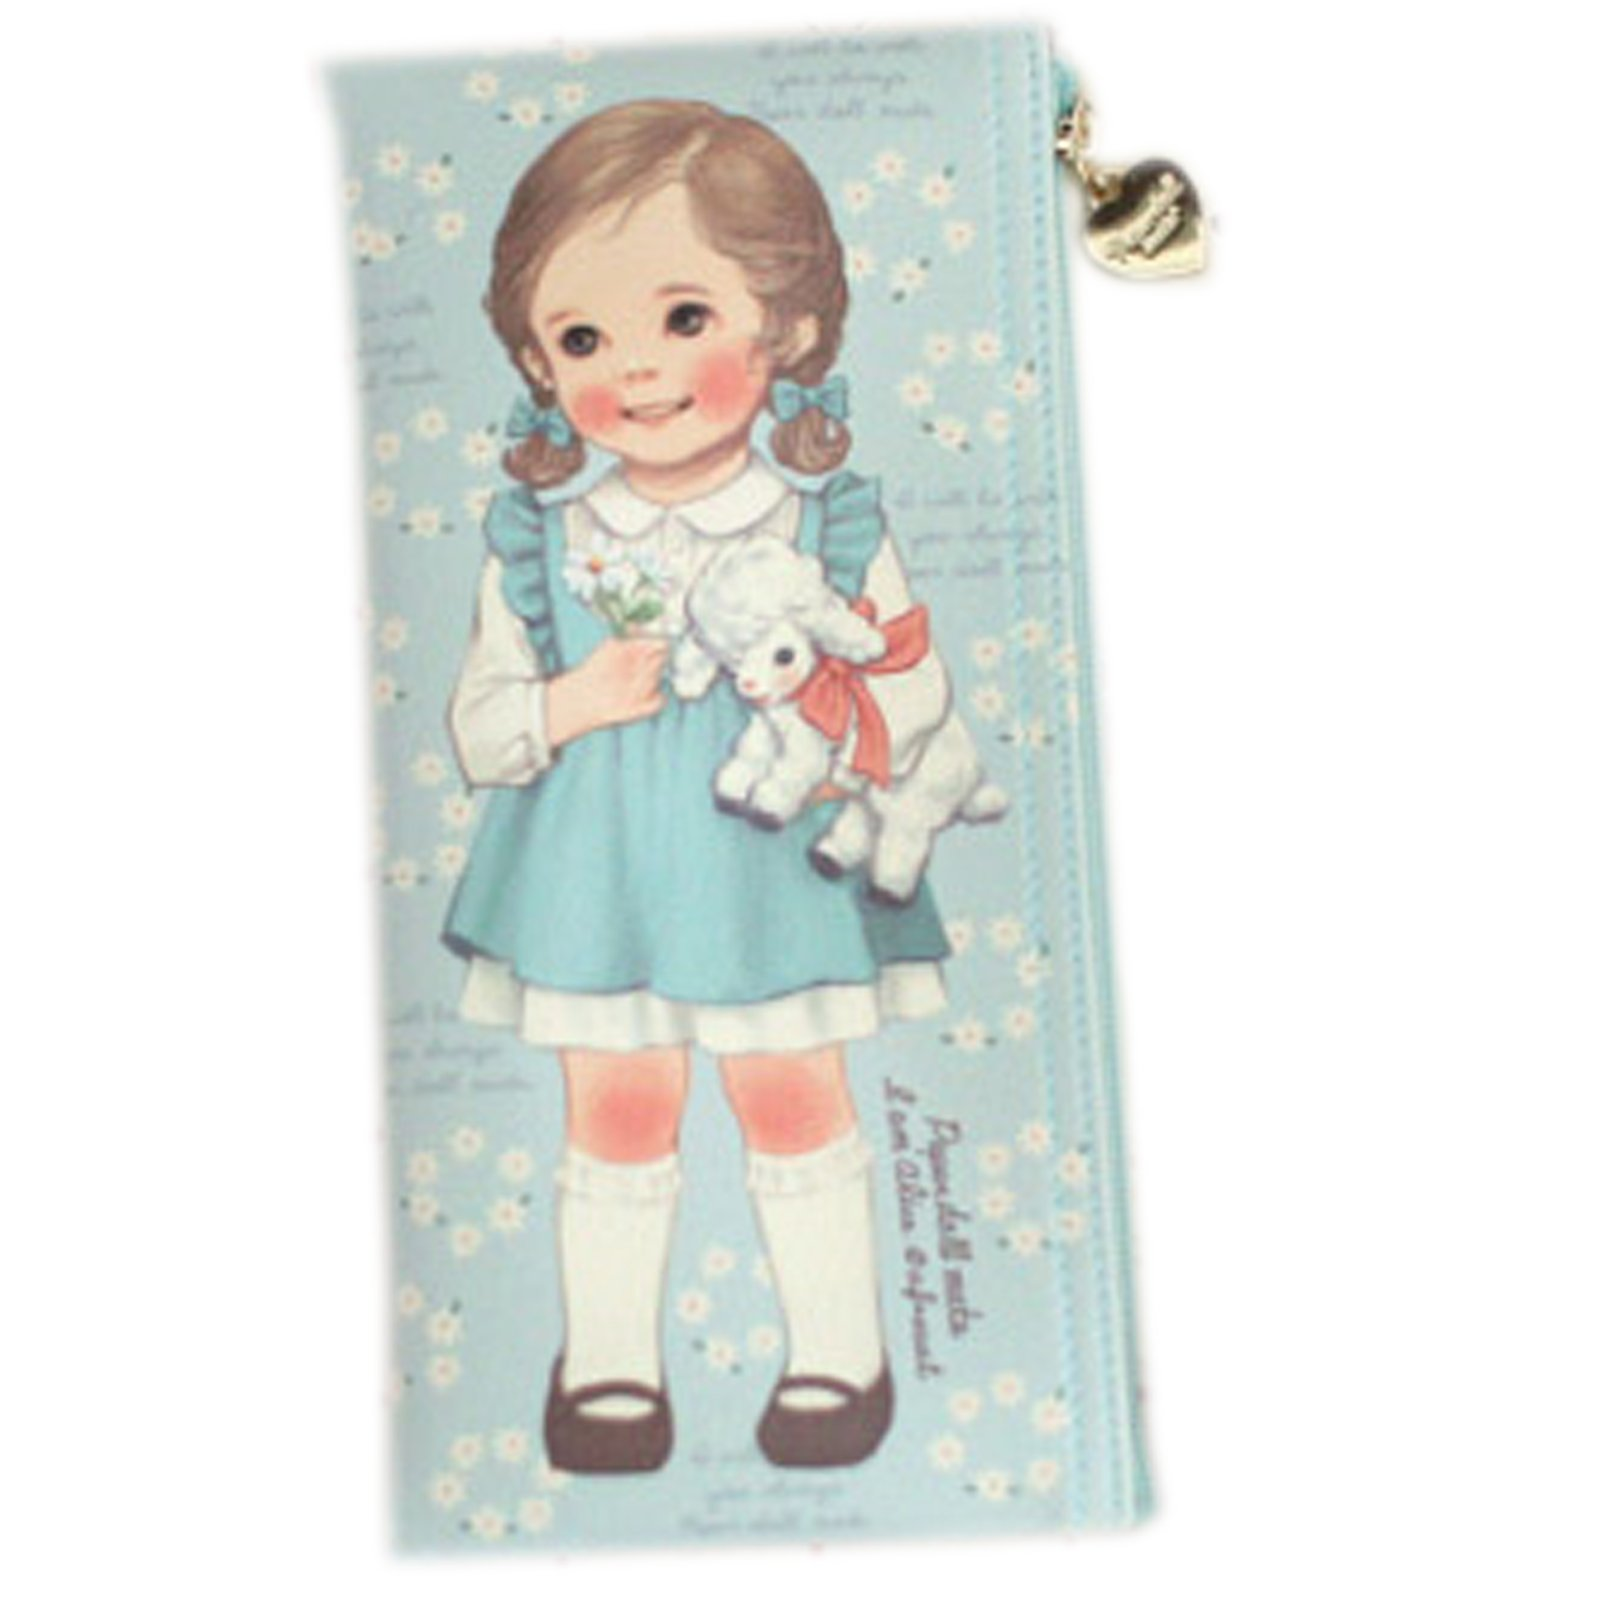 paperdollmate pencase ver007_blooming Alice by paper doll mate (Image #1)